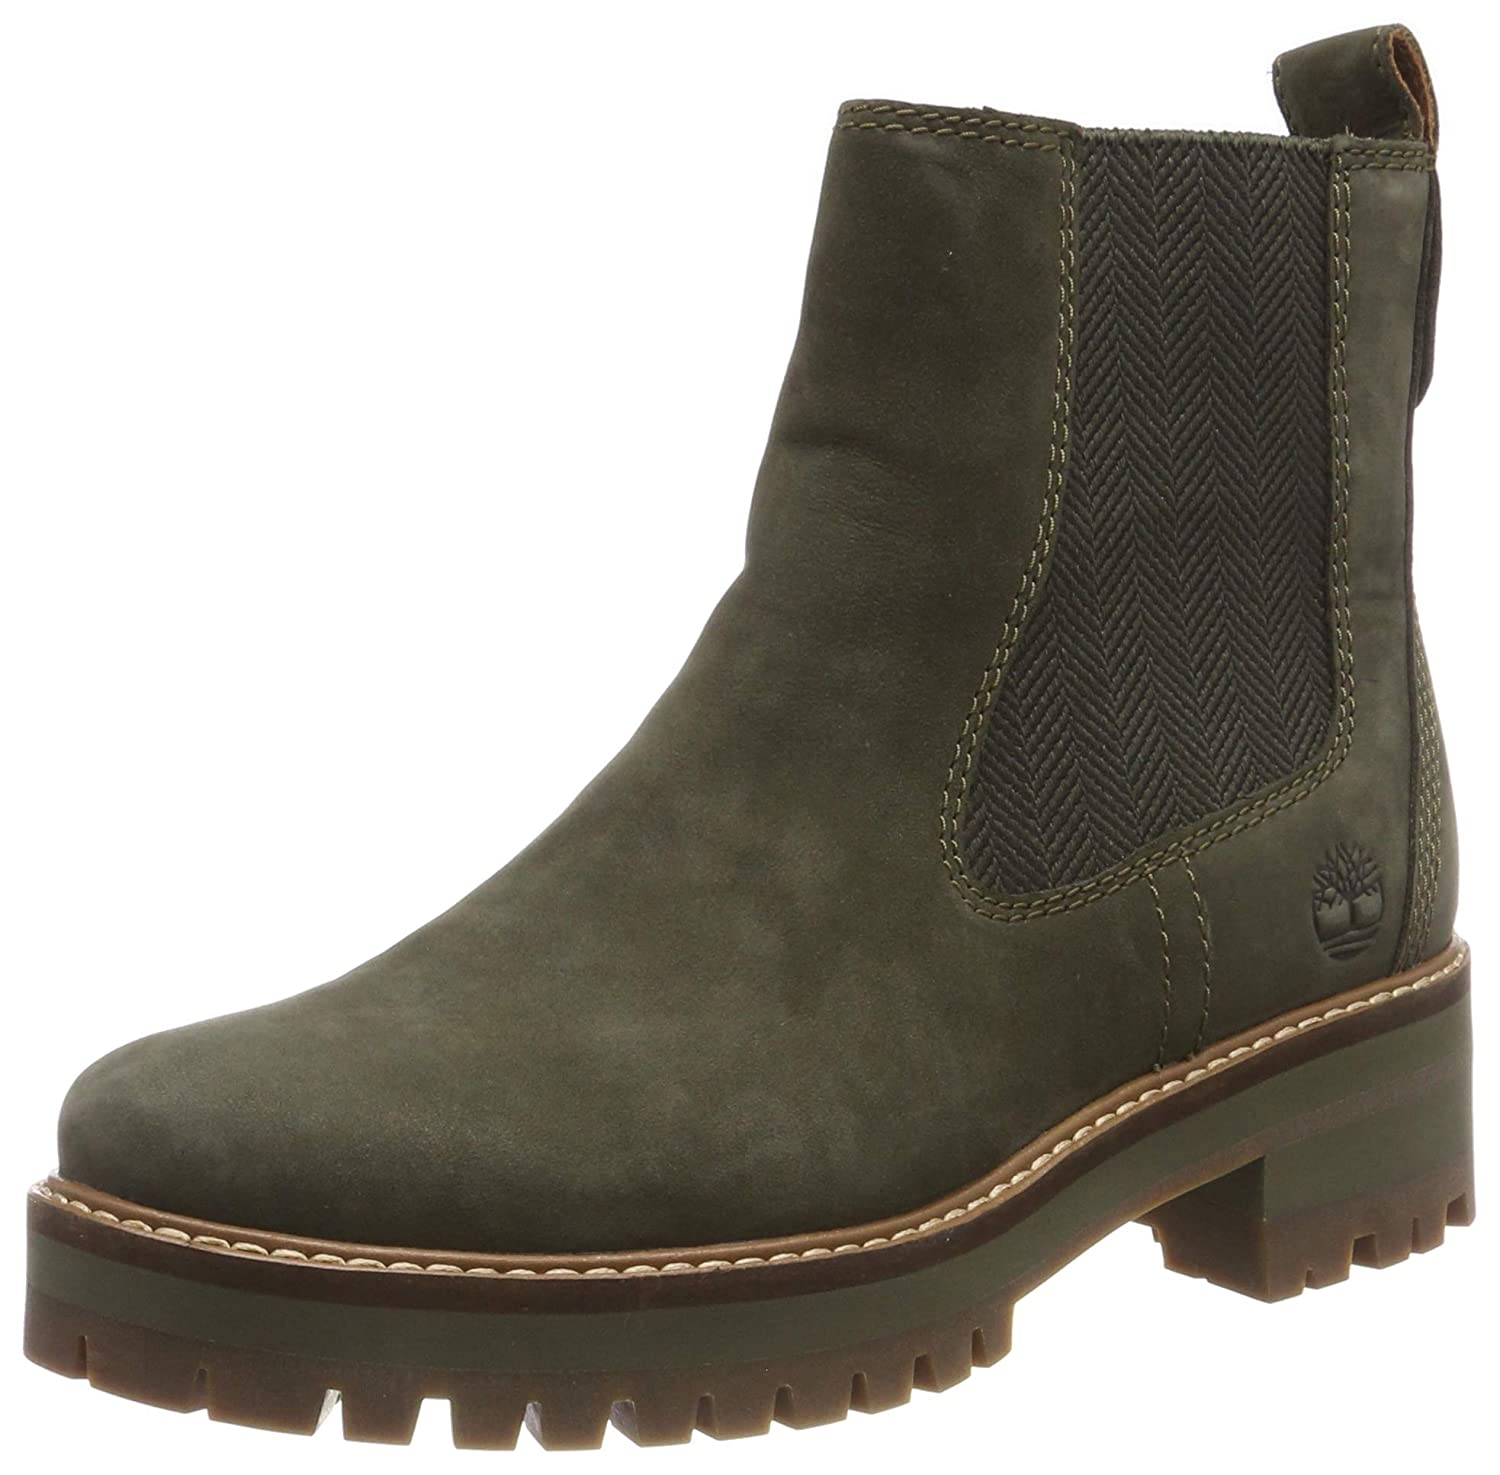 efbbd19f0 Timberland Unisex Adults' Courmayeur Valley Chelsea A1j5u Classic Boots:  Amazon.co.uk: Shoes & Bags